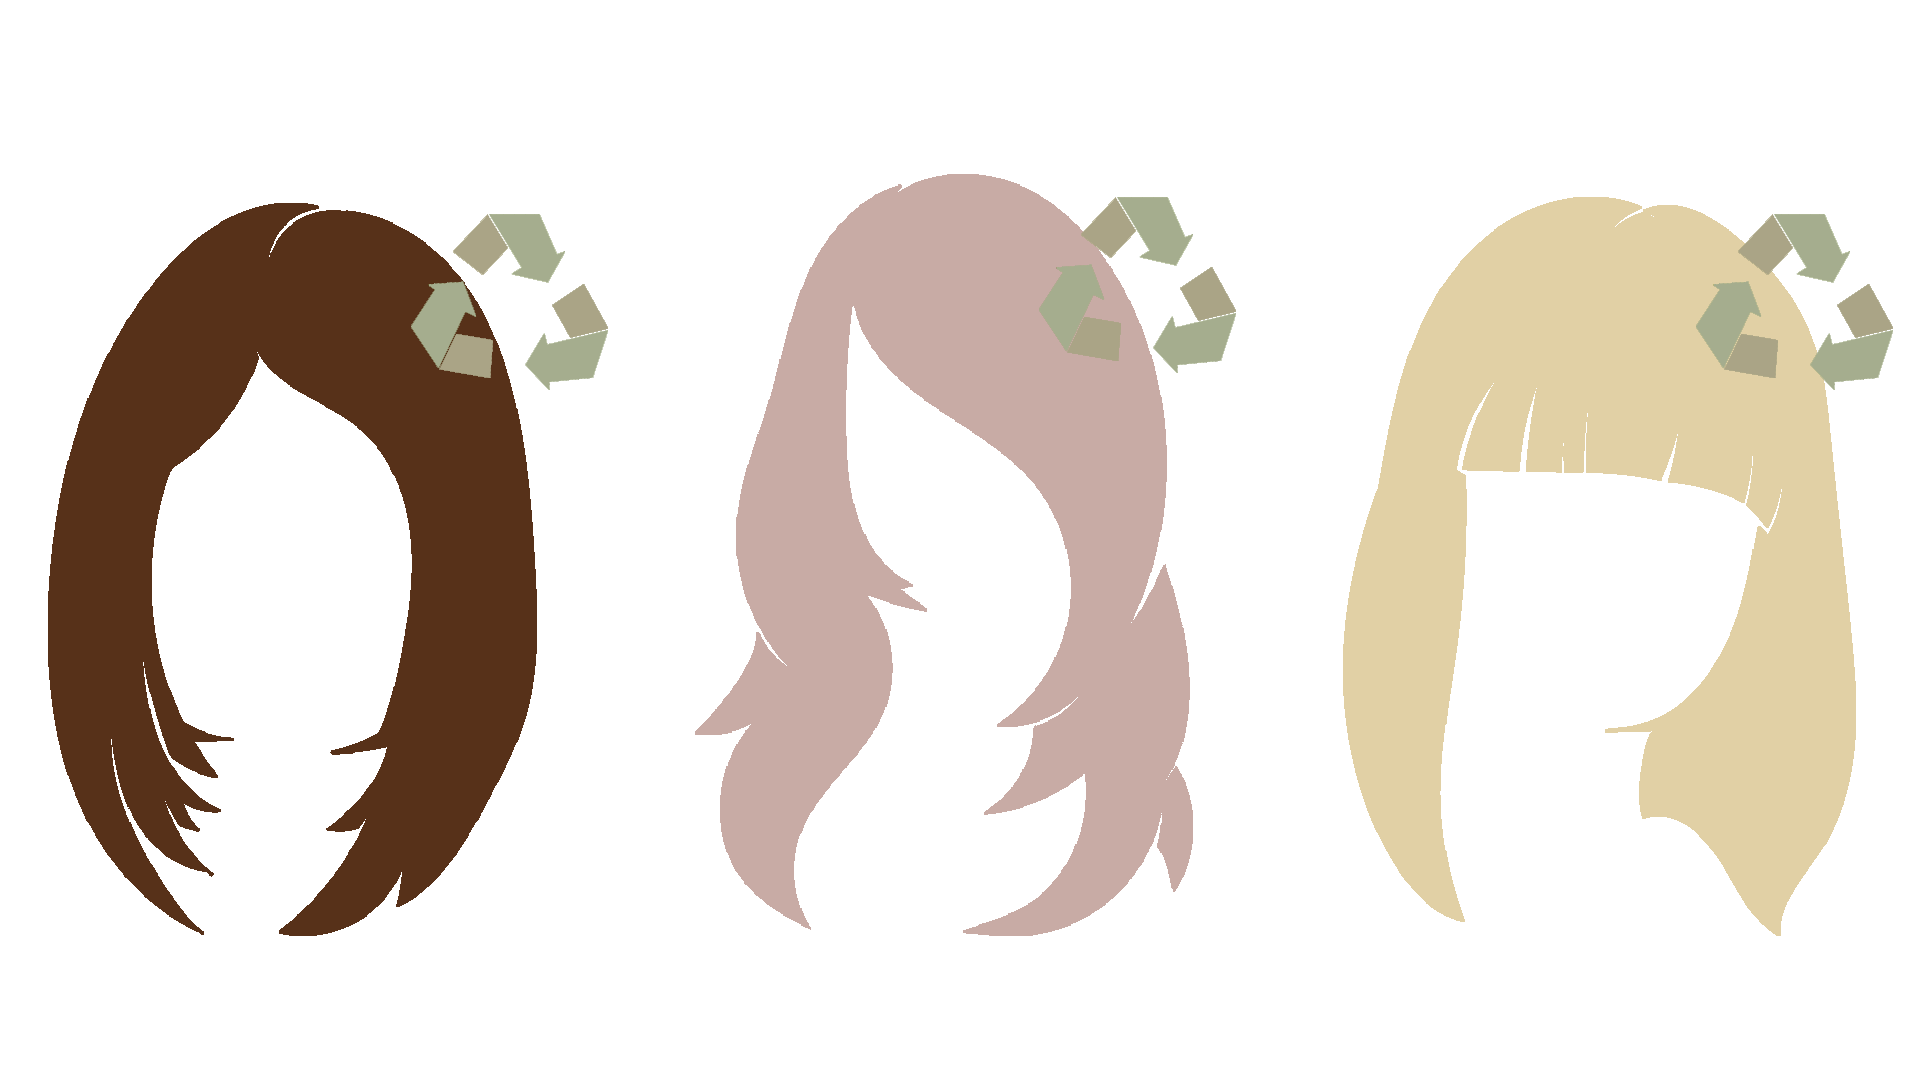 Hairstyle shape drawings for donation and recycling